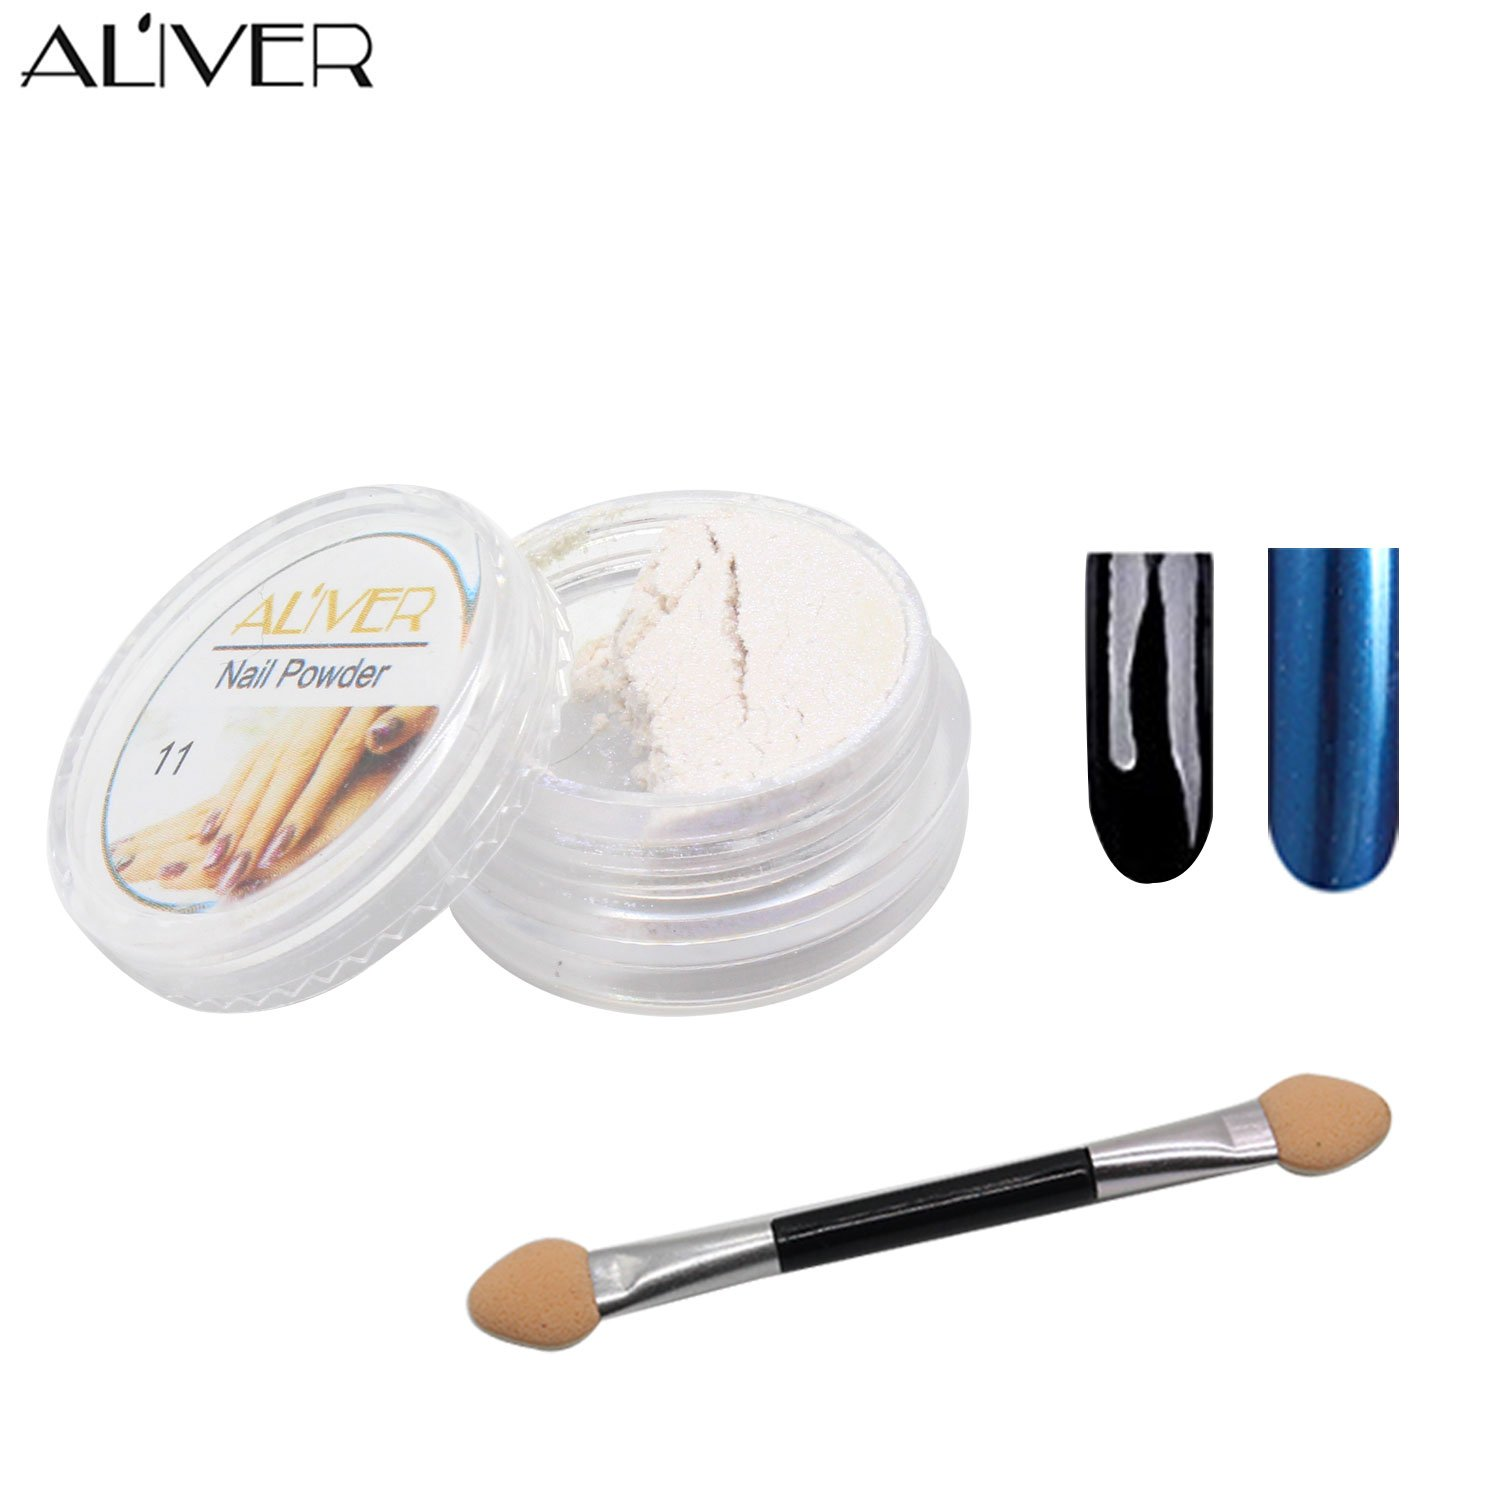 Aliver 12 Colors Nail Glitter Mirror Powder Shinning Nail Art DIY Pigment With Sponge Stick Moulis